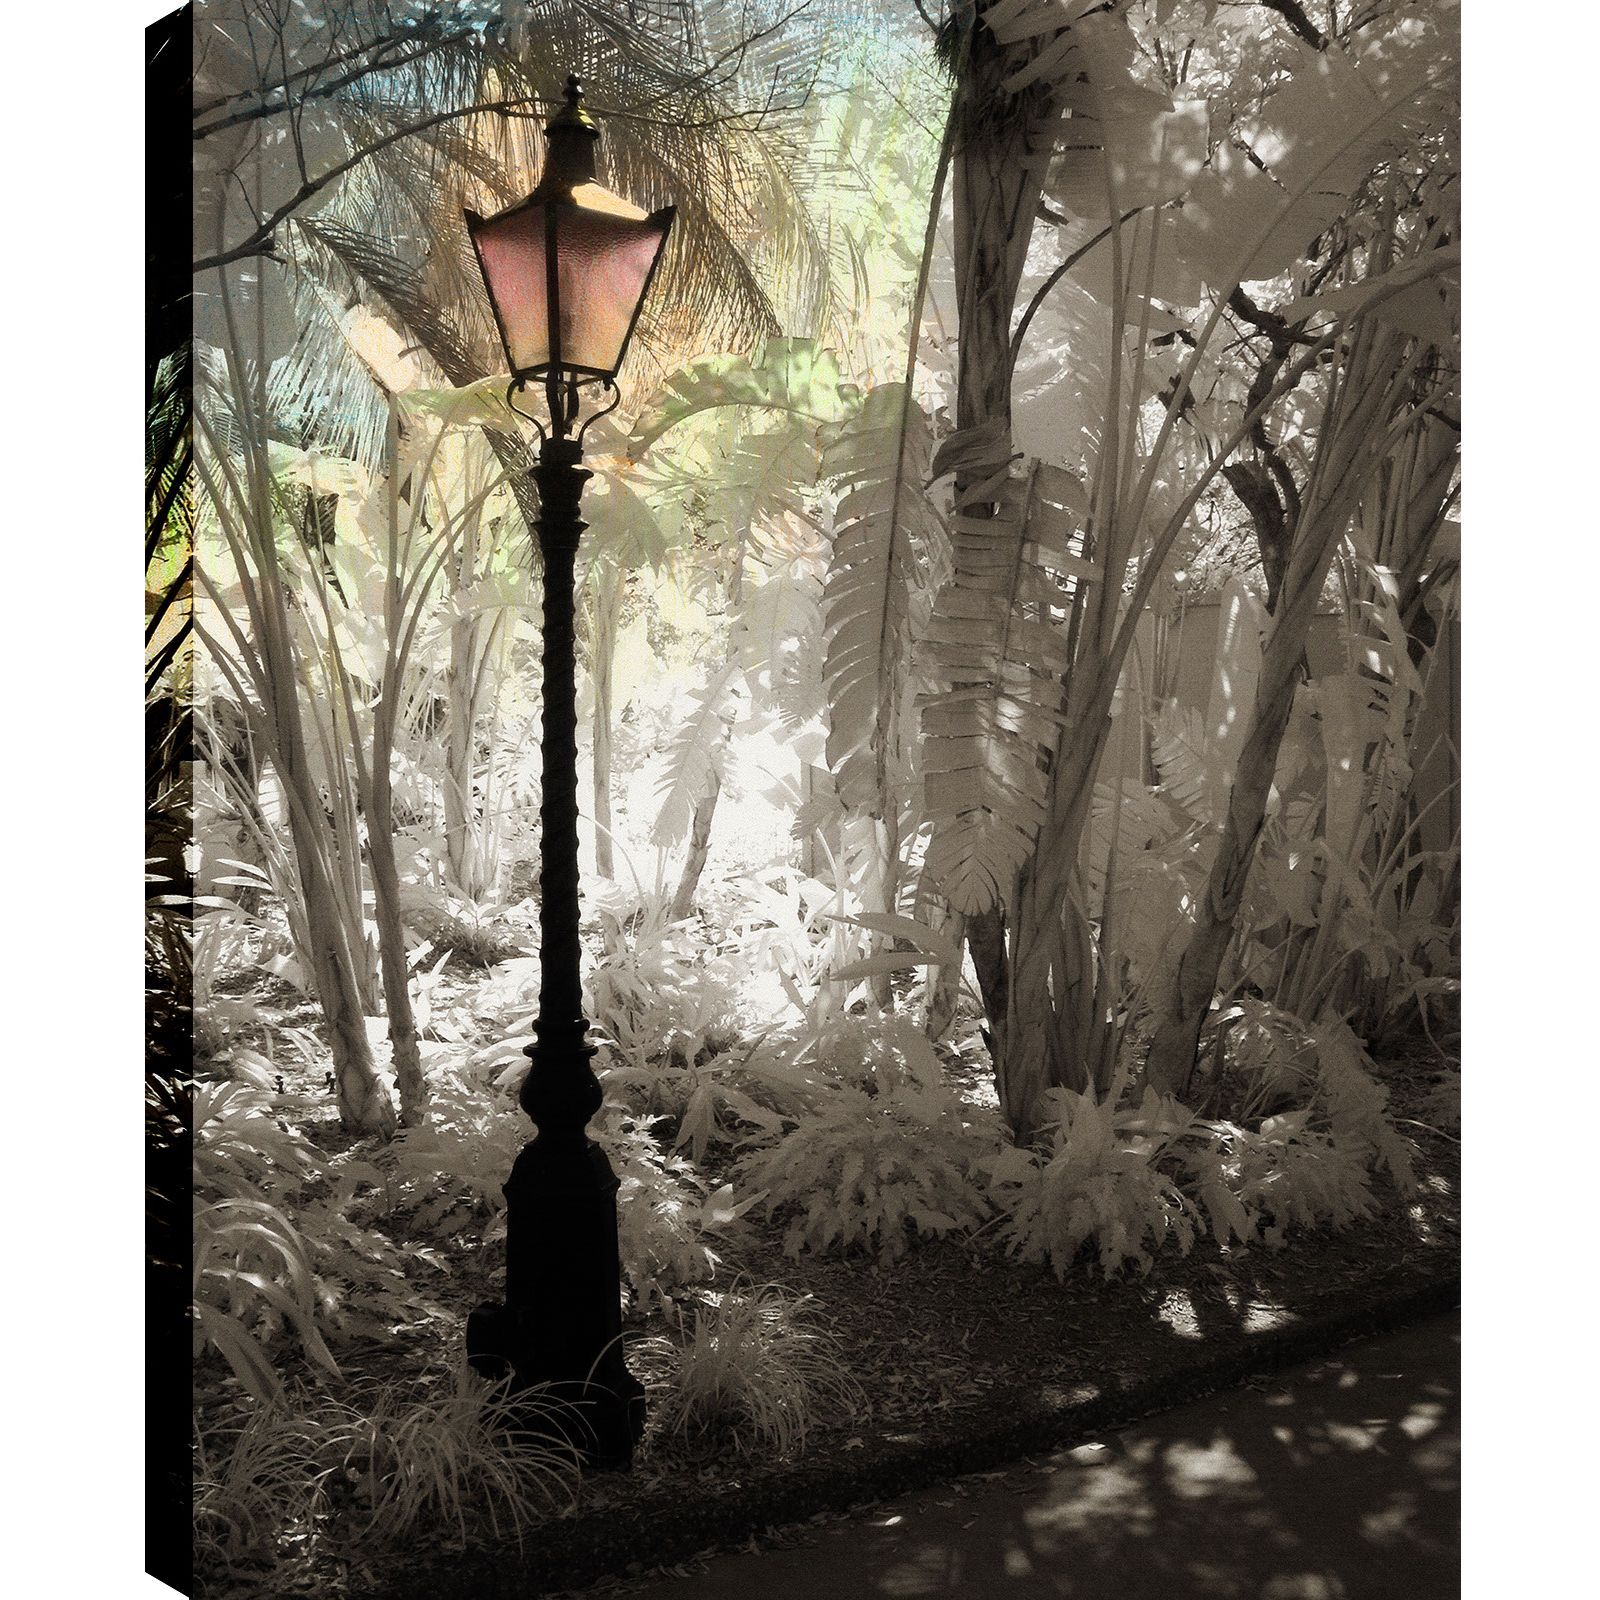 P.T. Turk 'Street Lamps Iii' Landscape Photography Wall Art